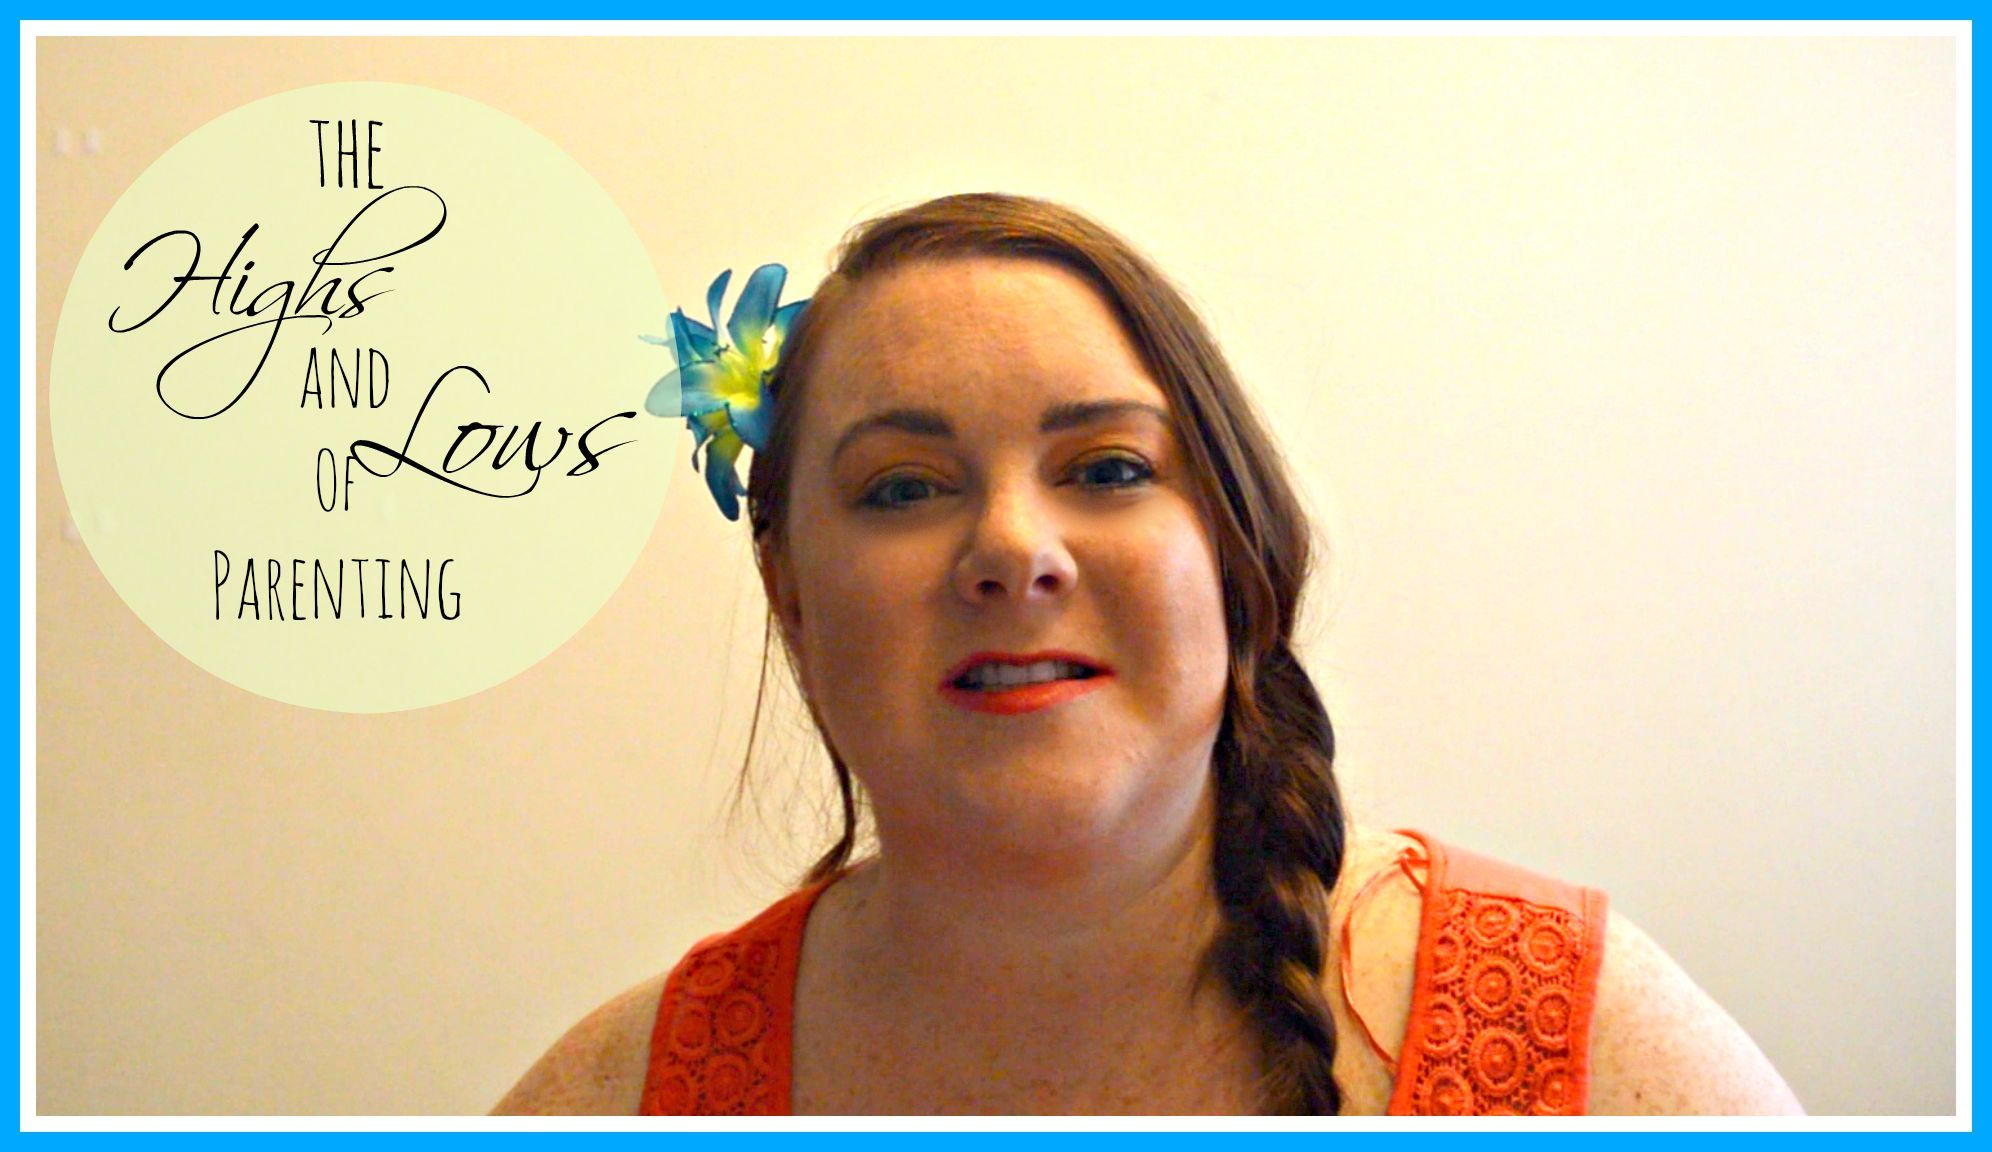 """I added """"The Highs and Lows of Parenting - YouTube"""" to an #inlinkz linkup!https://youtu.be/822KuHrbvik"""